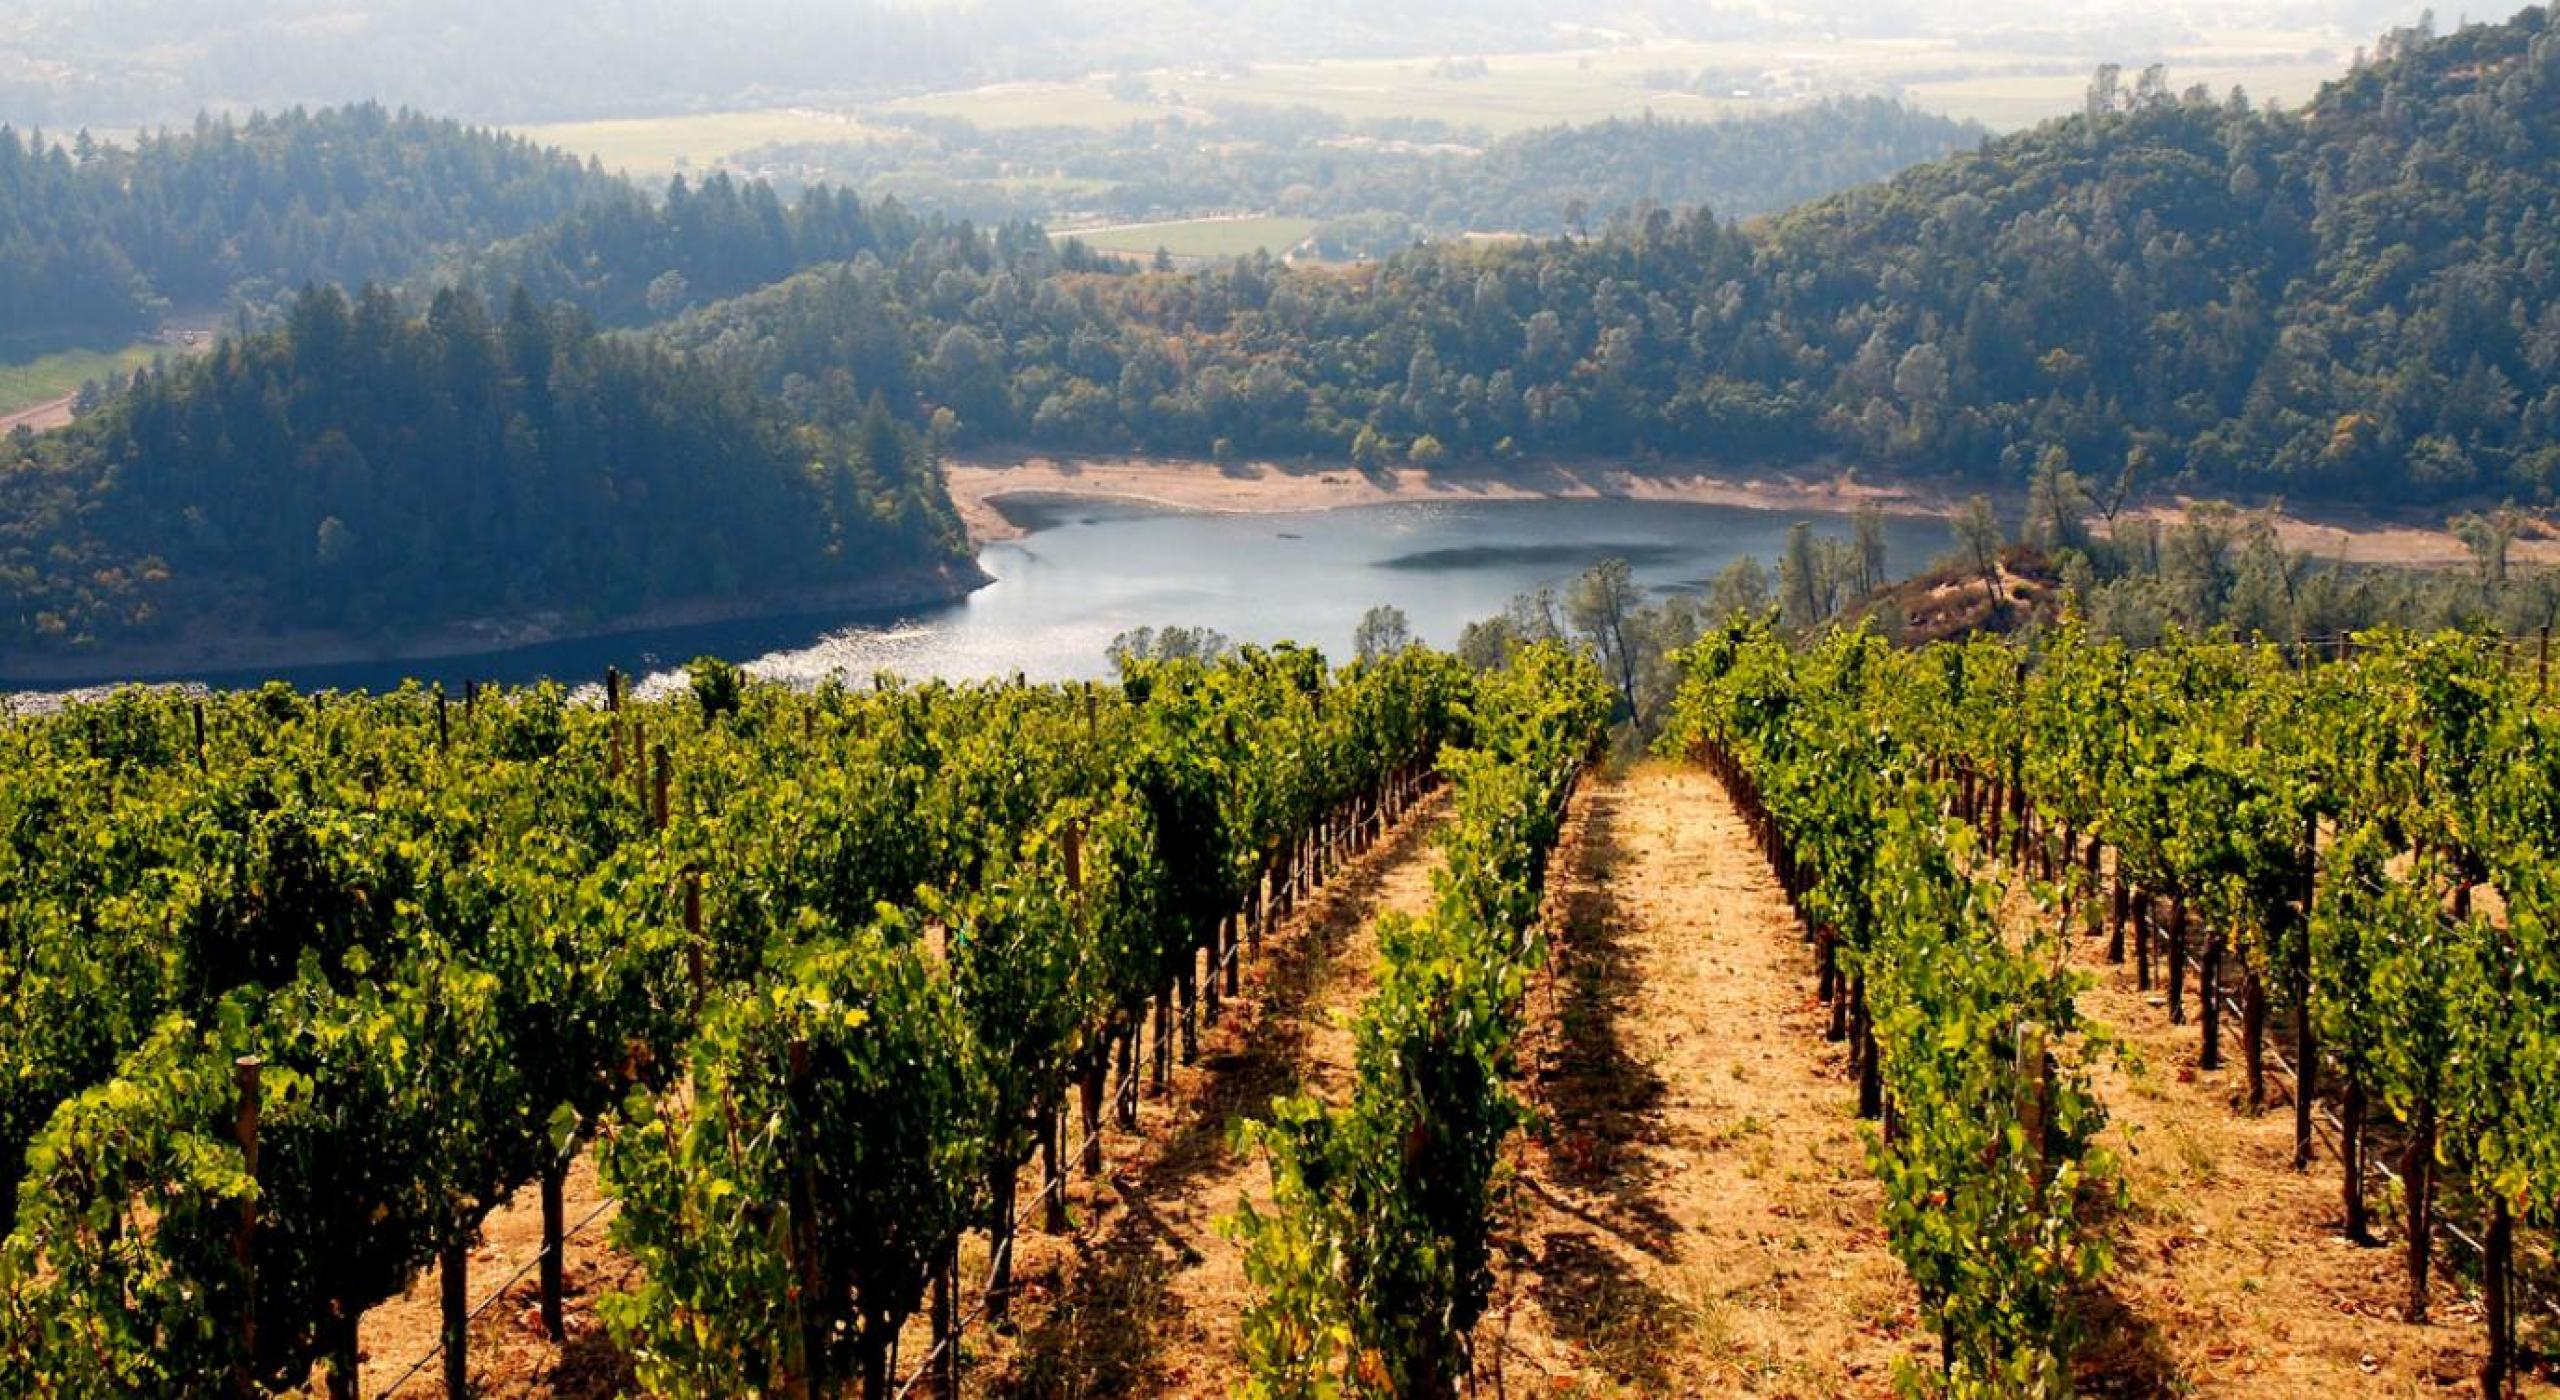 From the Bay to the Vine: San Francisco to California Wine Country